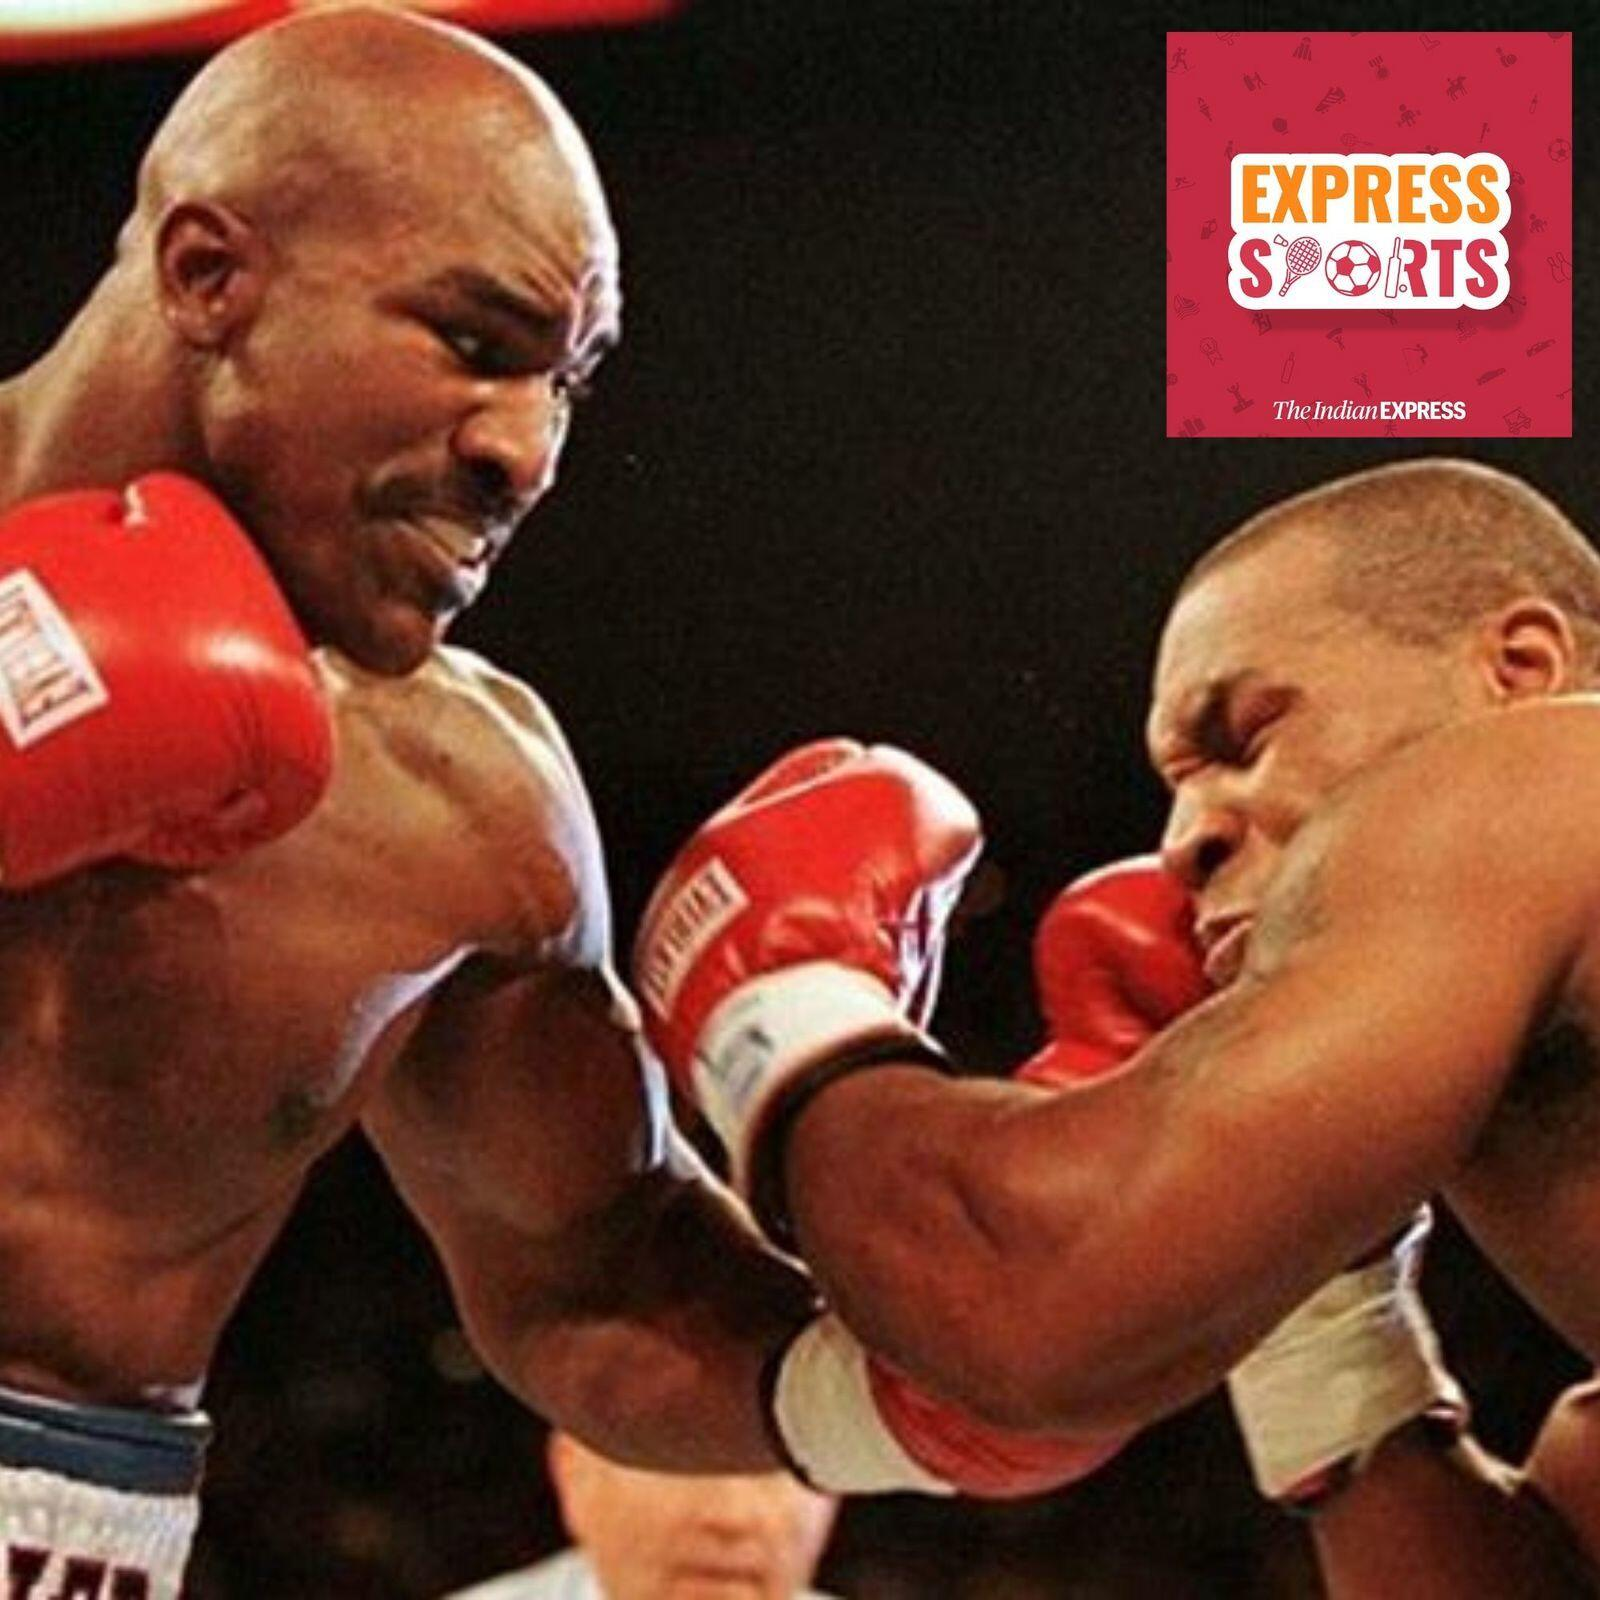 75: Old Scores: The epic 1996 bout when Mike Tyson and Evander Holyfield finally fought